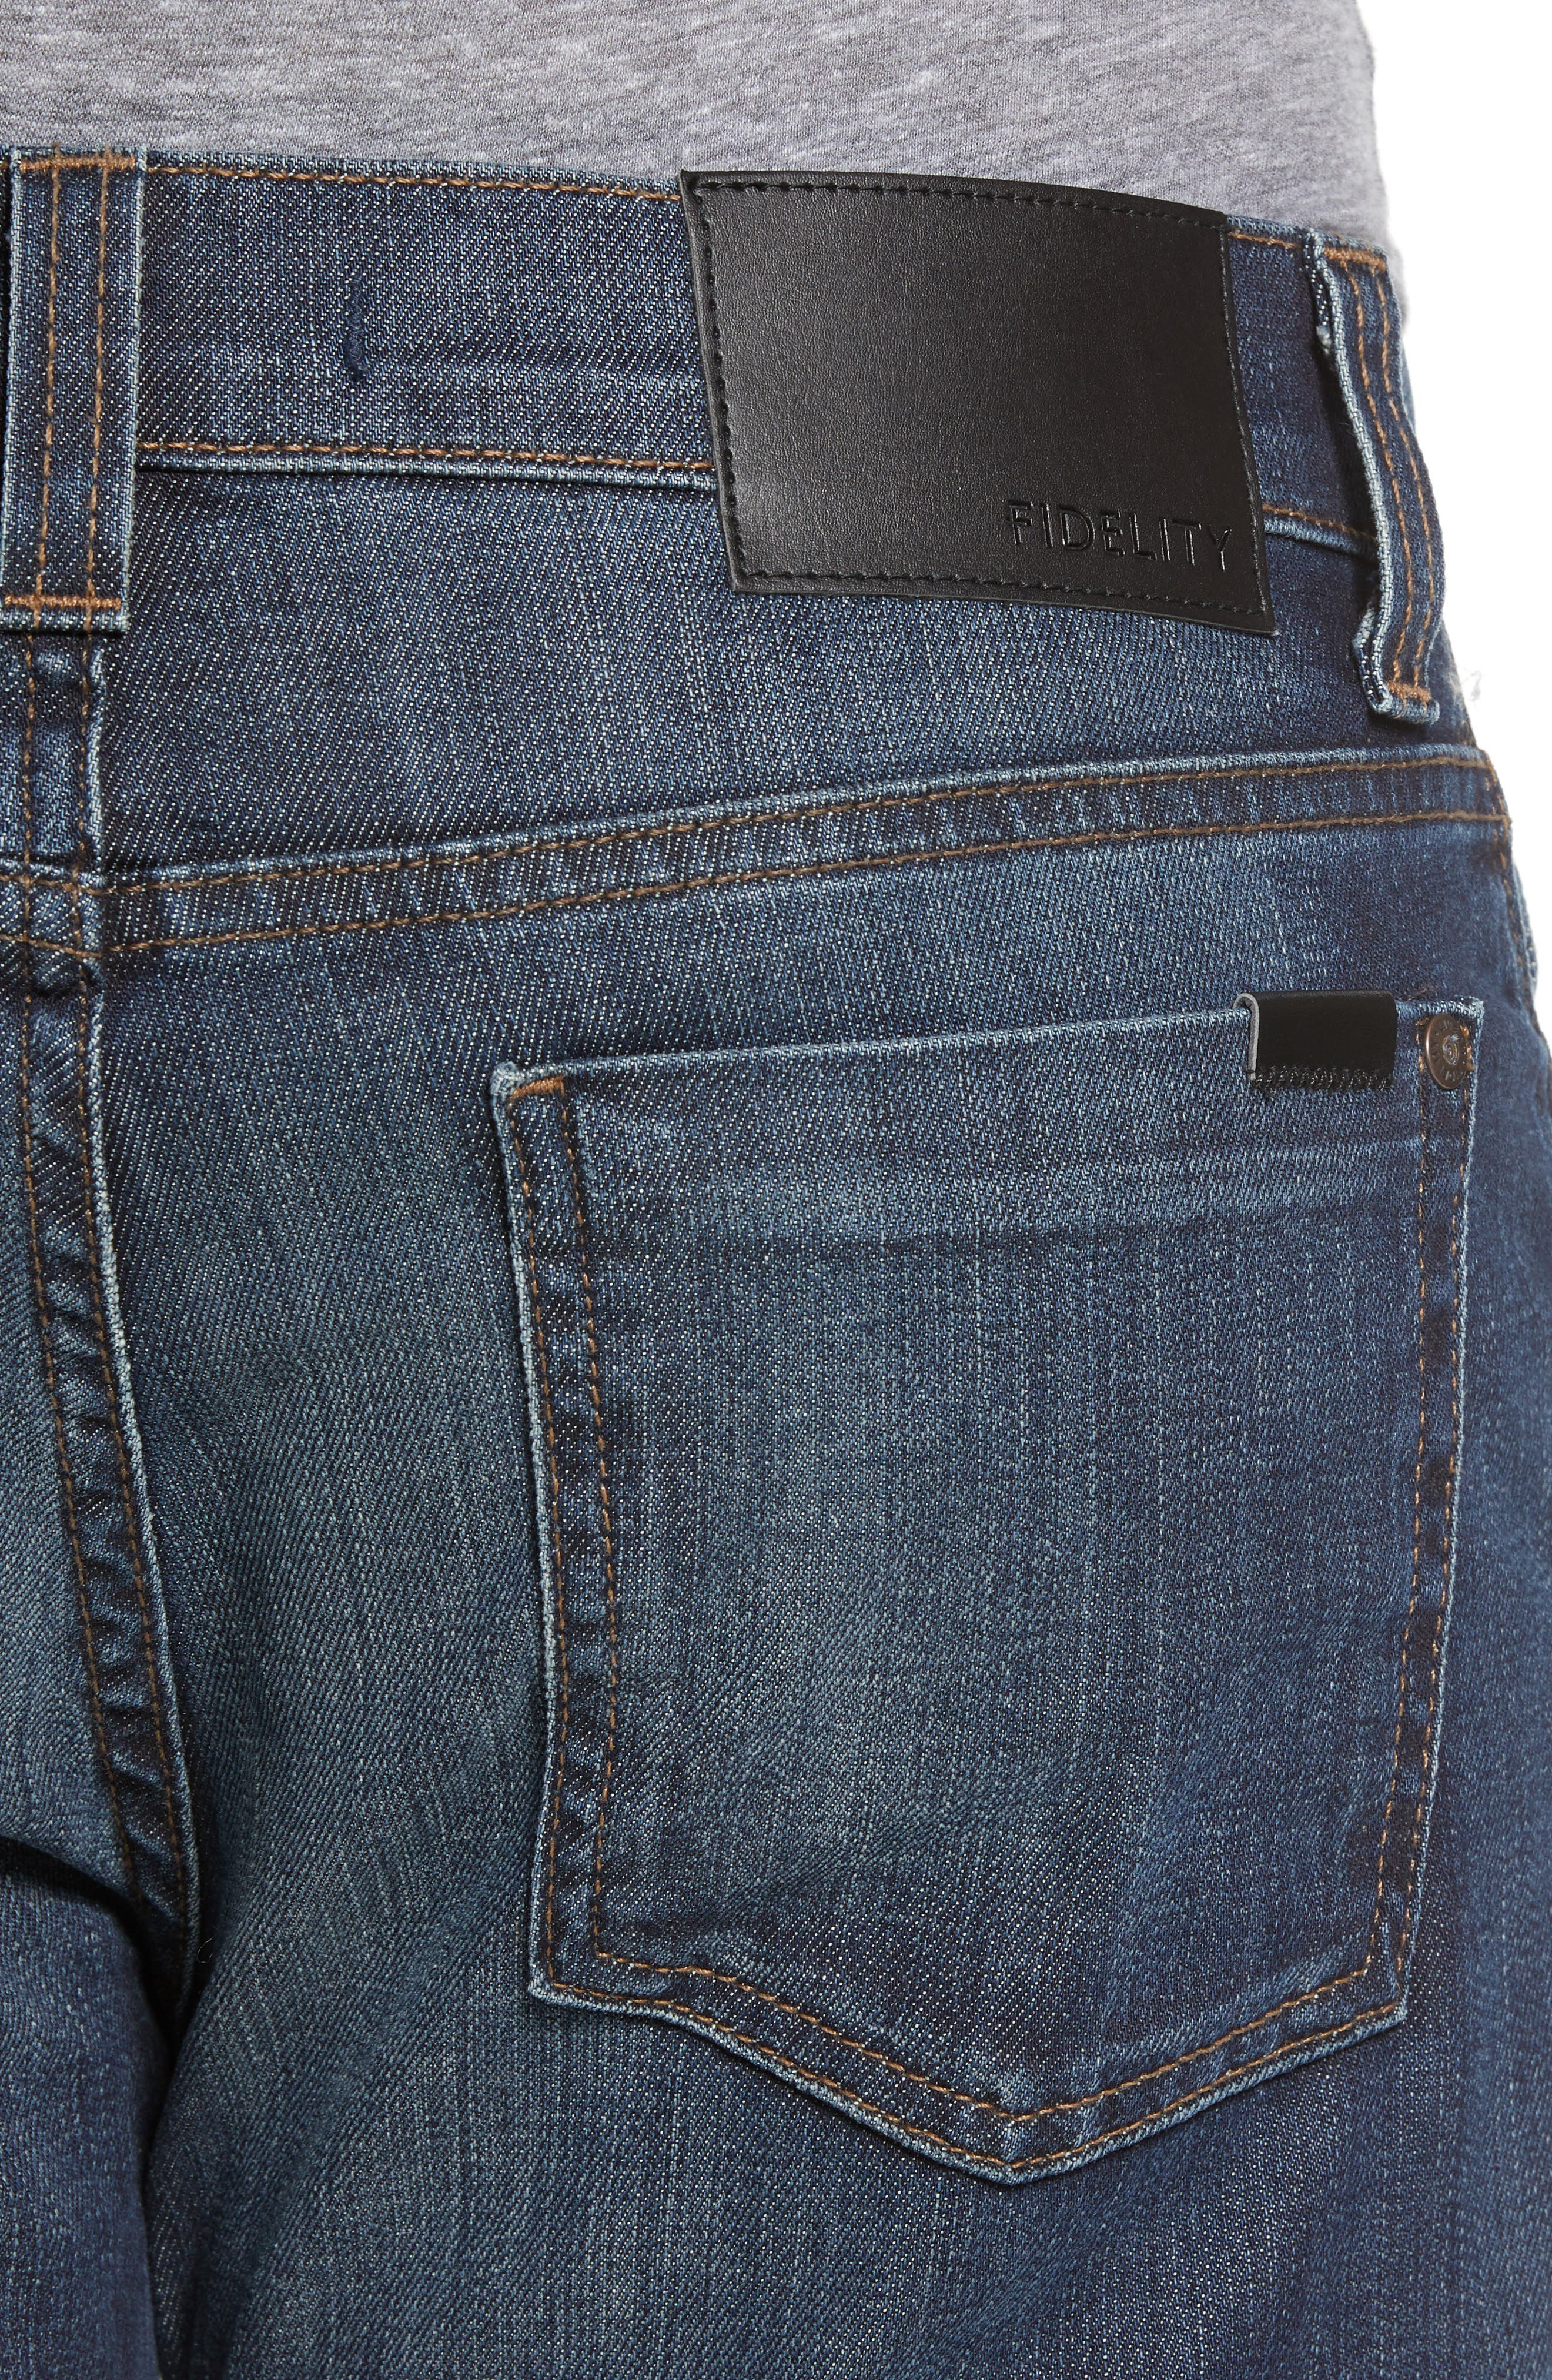 50-11 Relaxed Fit Jeans,                             Alternate thumbnail 4, color,                             Winwood Vintage